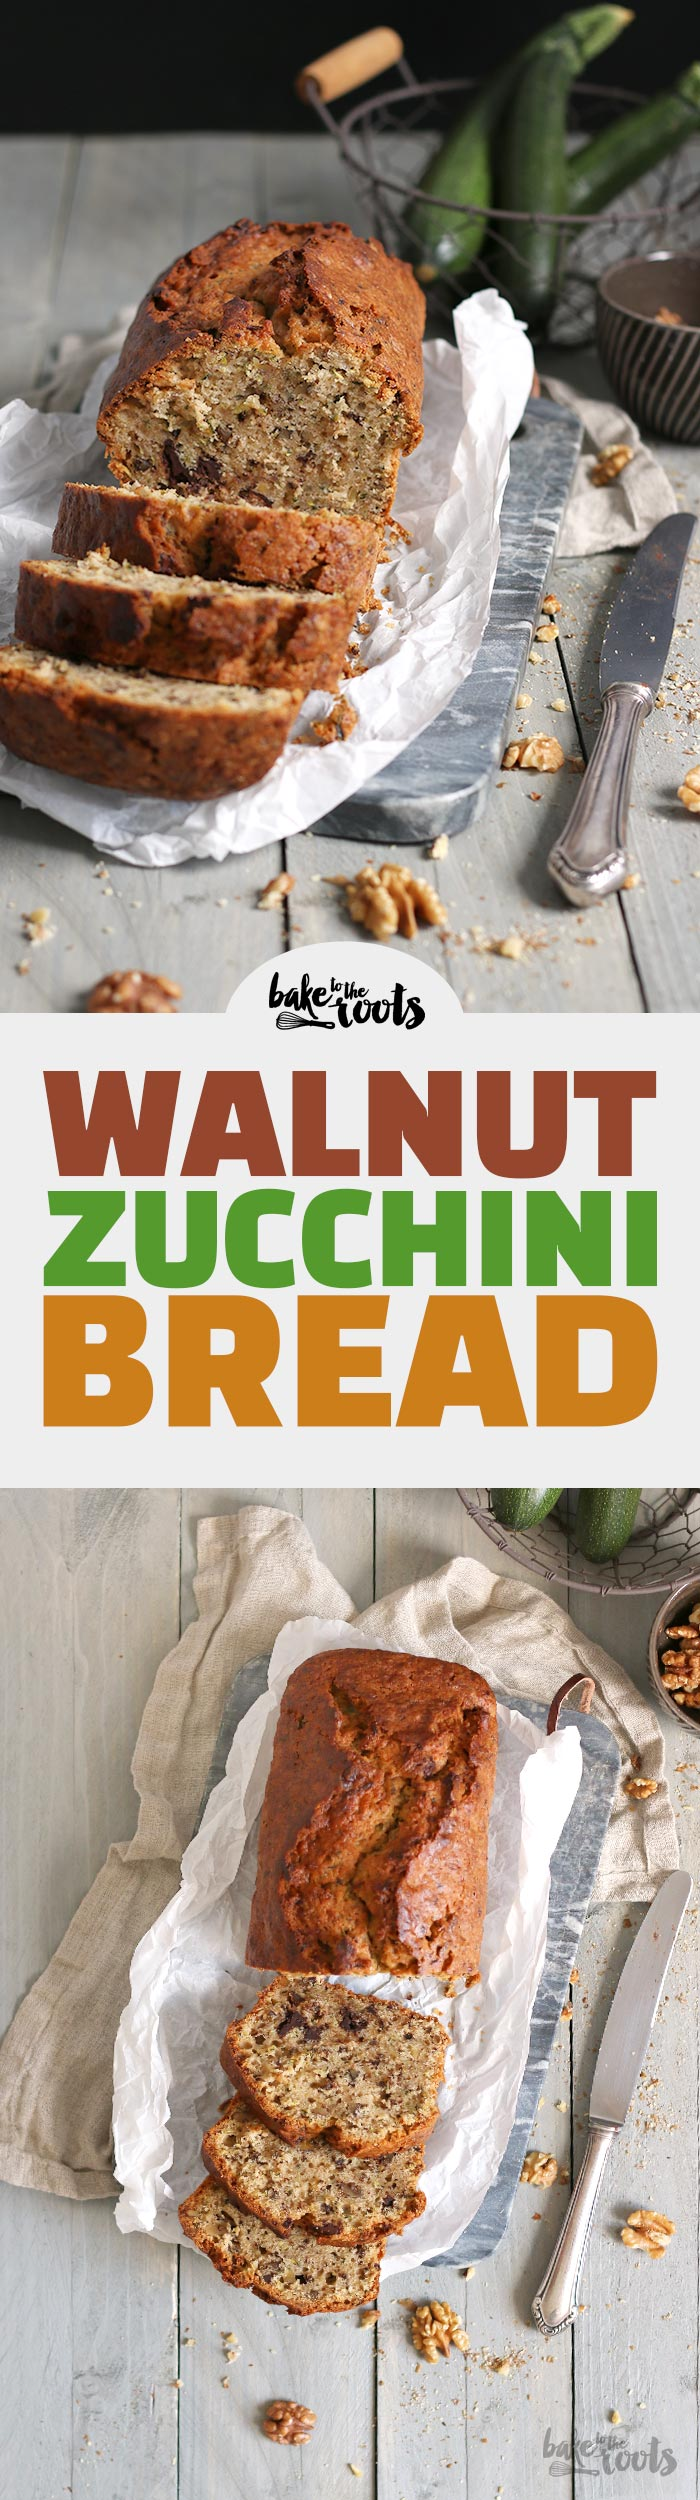 Walnut Zucchini Bread | Bake to the roots